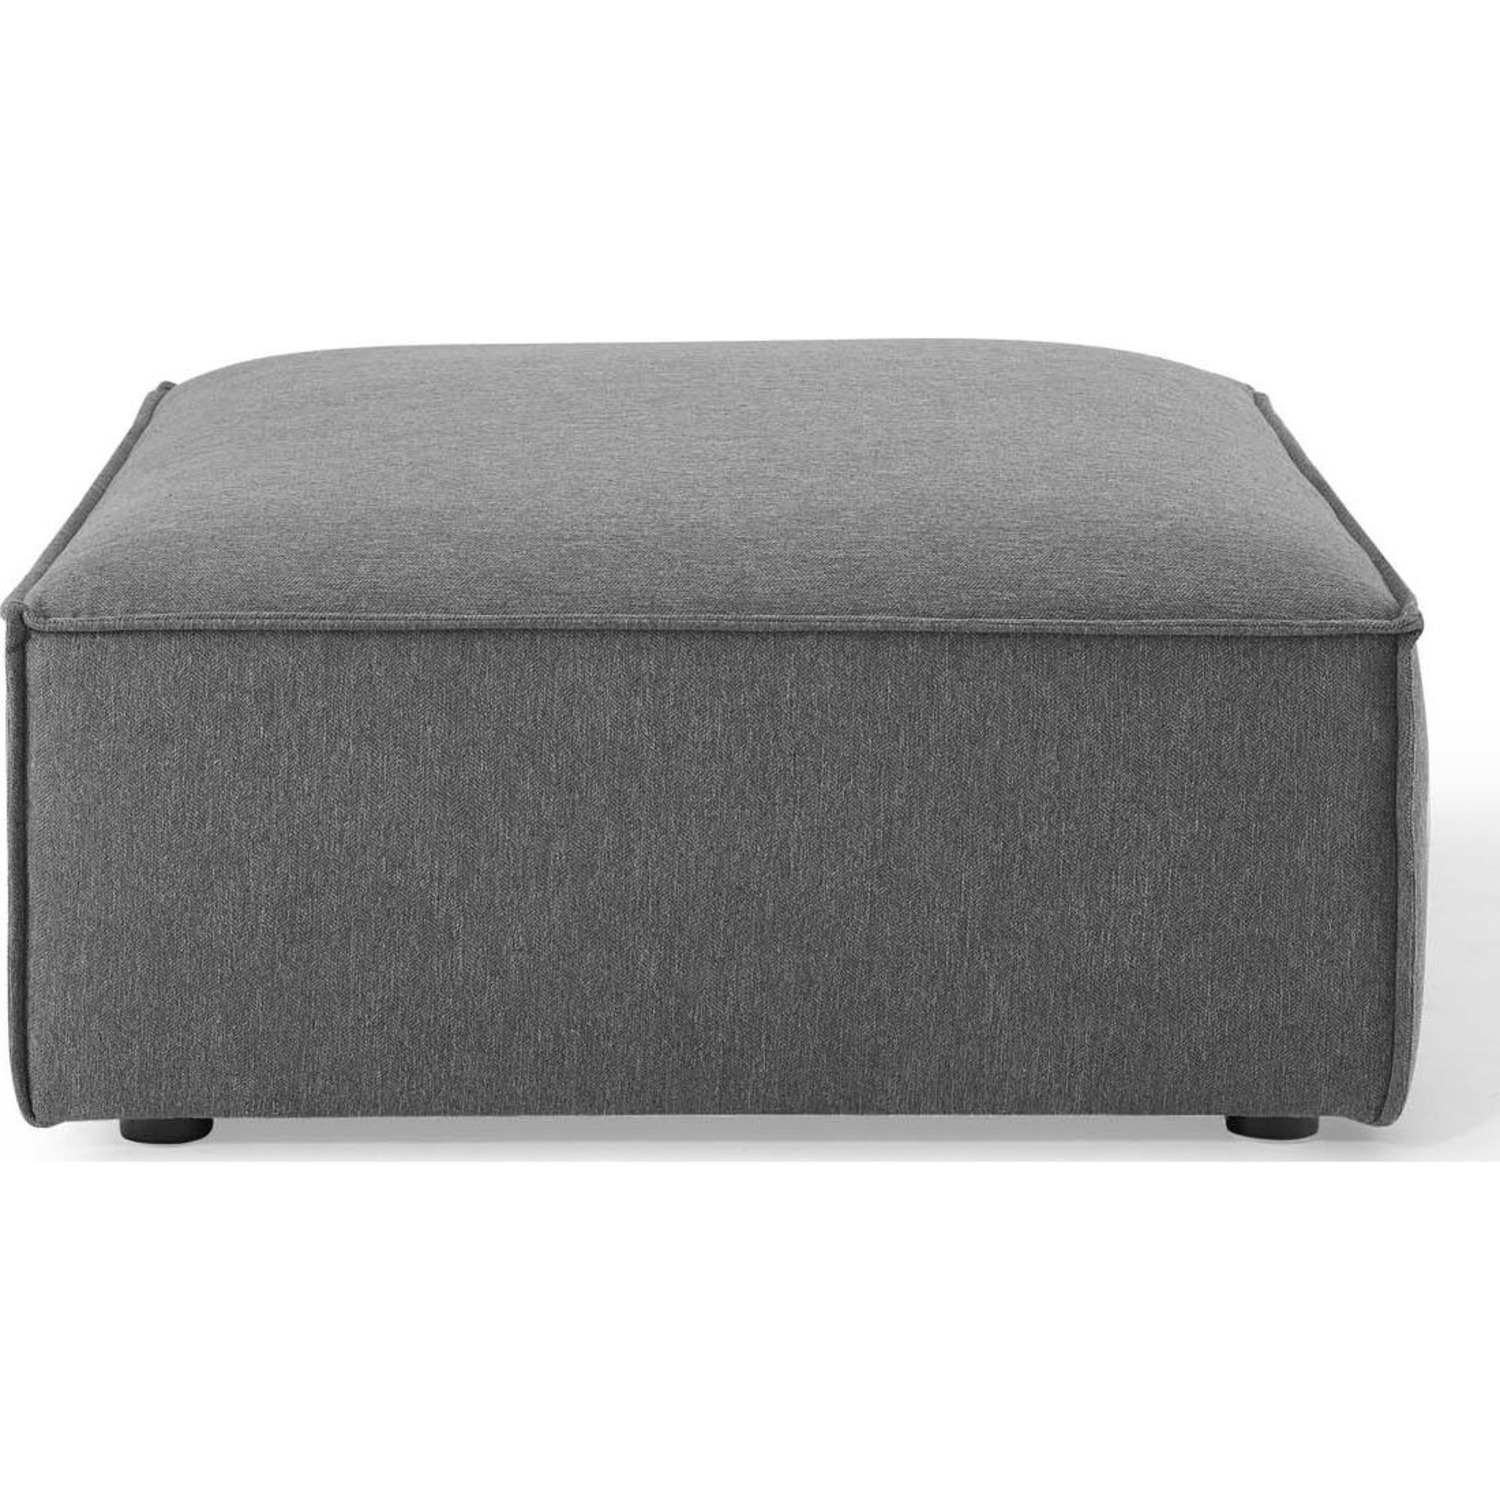 4-Piece Sectional Sofa In Charcoal Fabric - image-8